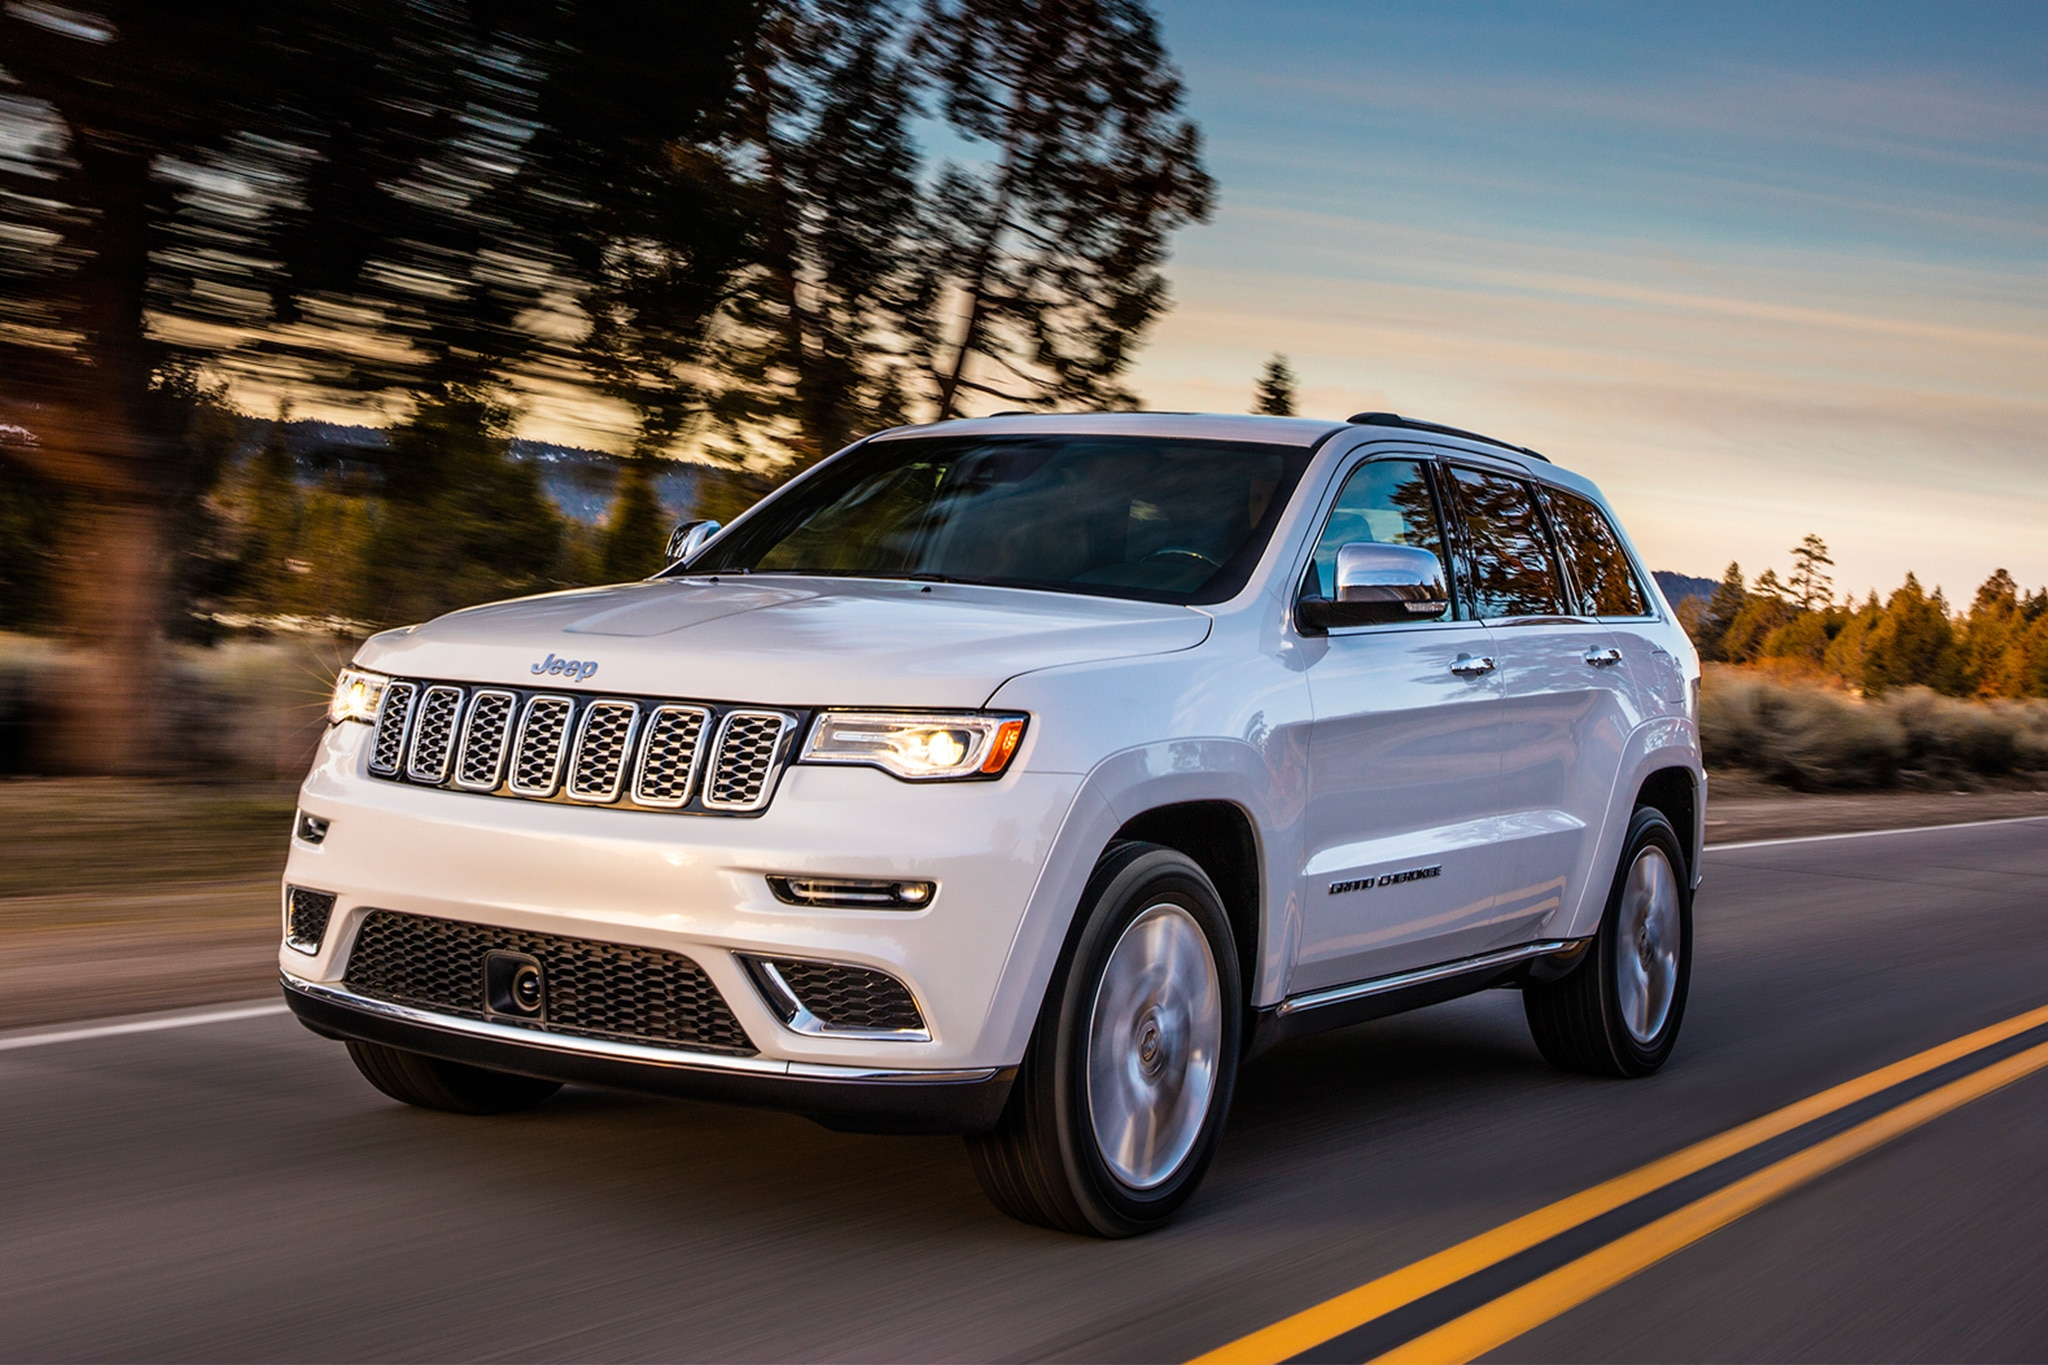 First Drive: 2017 Jeep Grand Cherokee